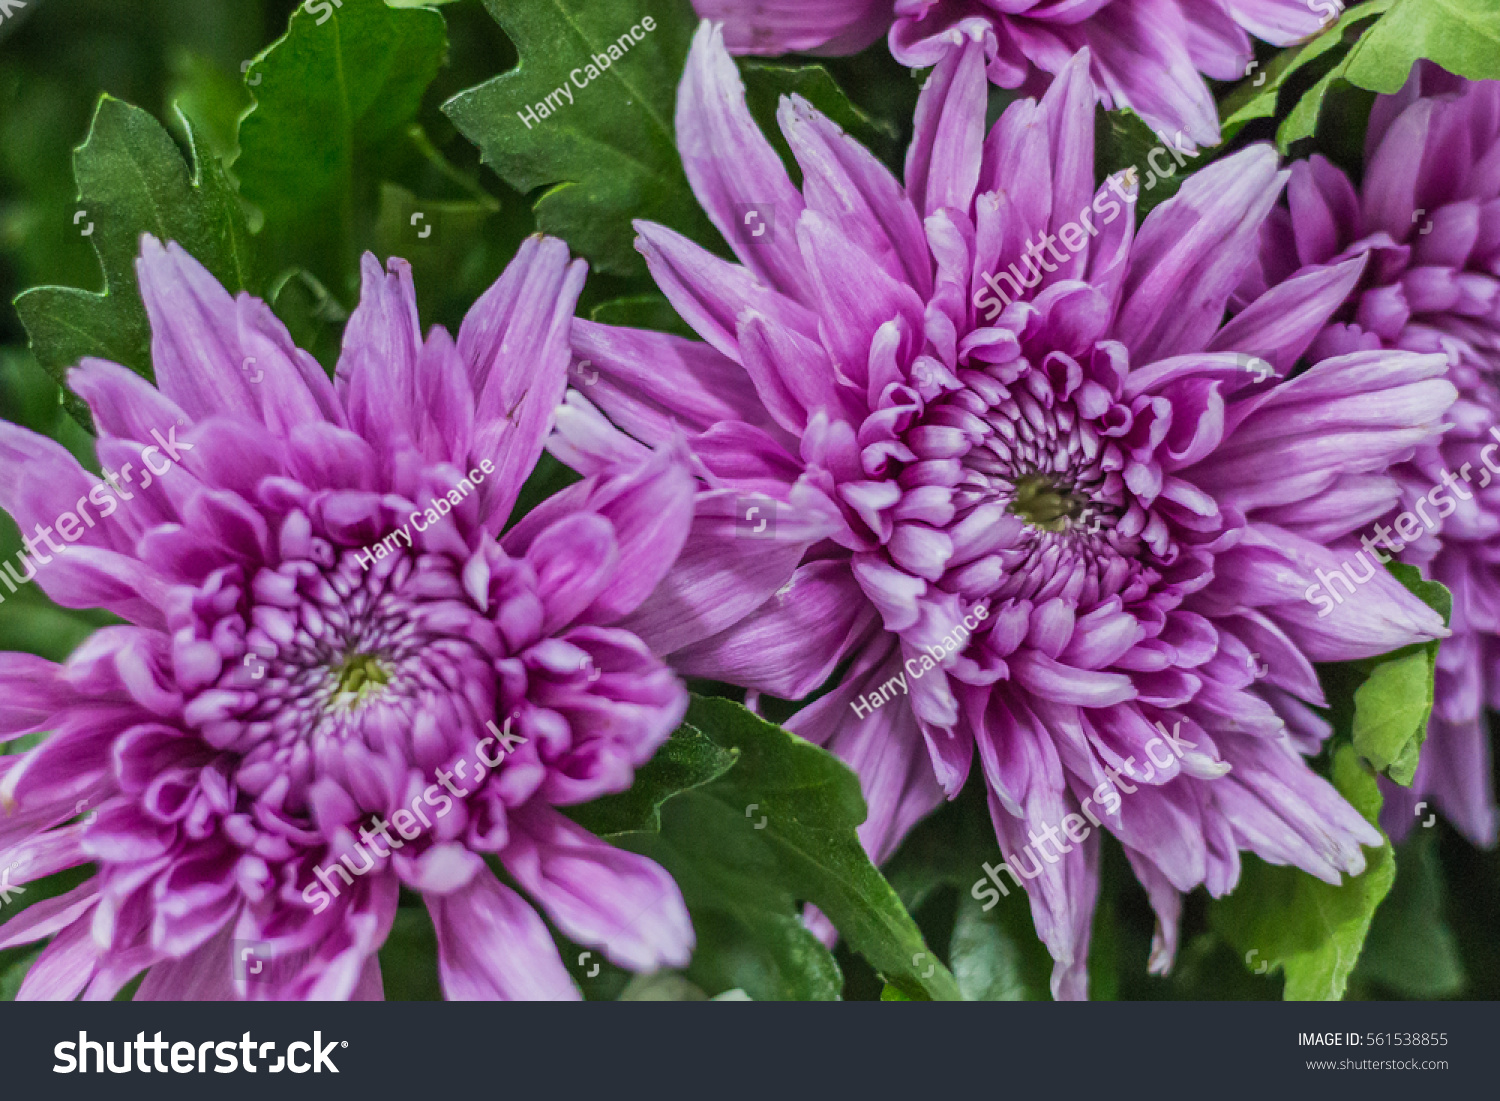 Beautiful purple daisy flowers blooming ez canvas id 561538855 izmirmasajfo